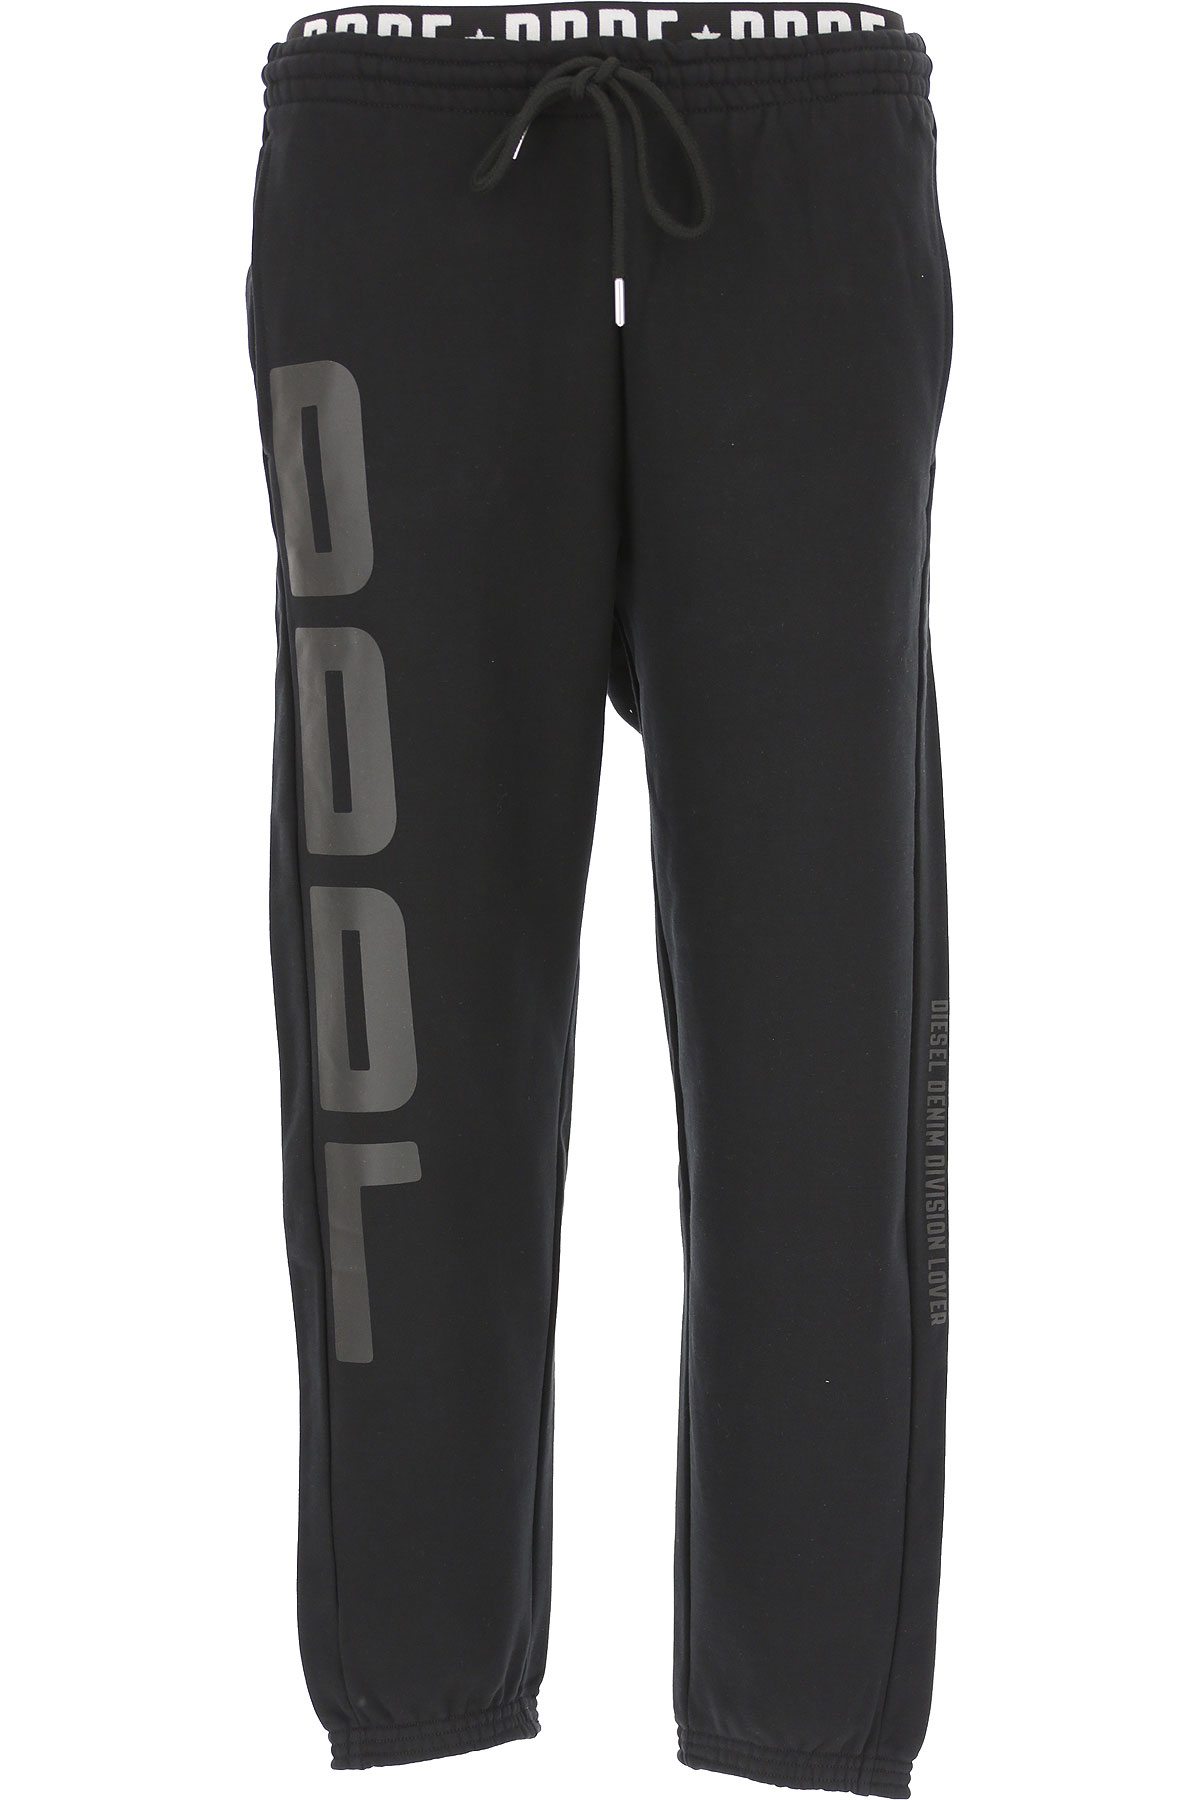 Diesel Men's Sportswear for Gym Workouts and Running, Black, Cotton, 2019, L S XL